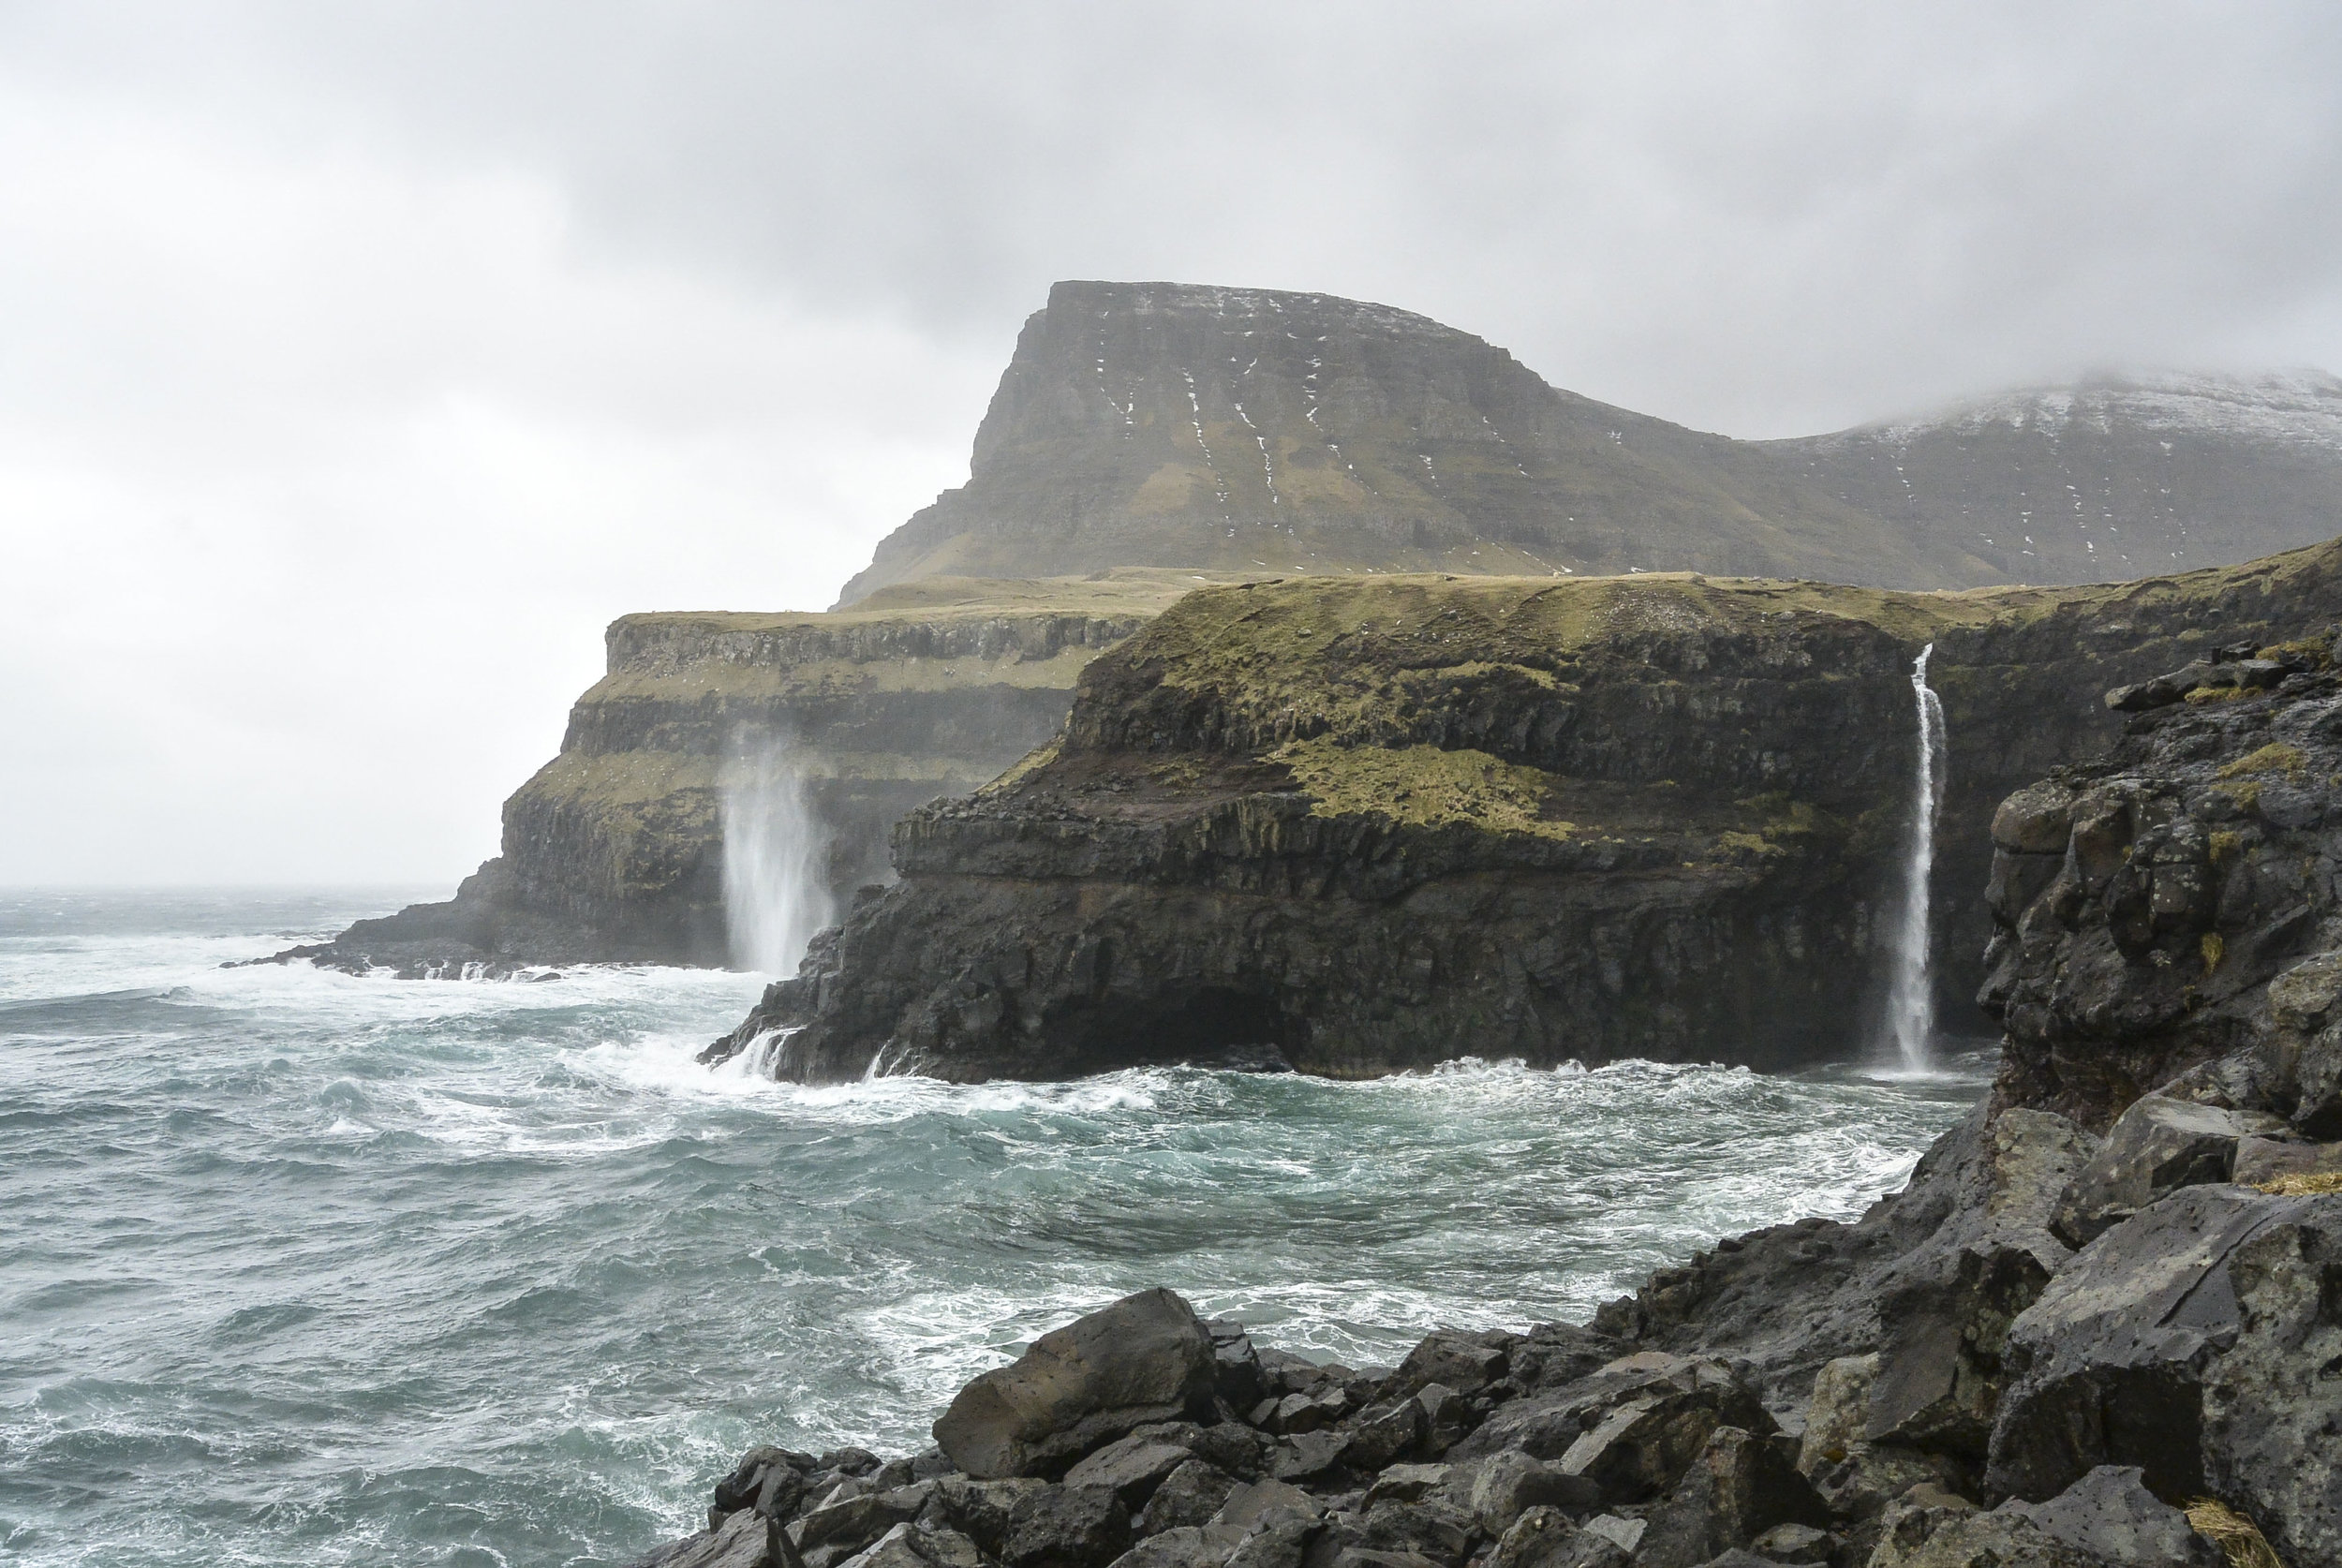 Waves batter the west coast of Vágar on April 18th, 2016, in Gásadalur, Faroe Islands. The small town is a popular destination among photographers, and connected to the rest of the island through a tunnel in the mountainside.